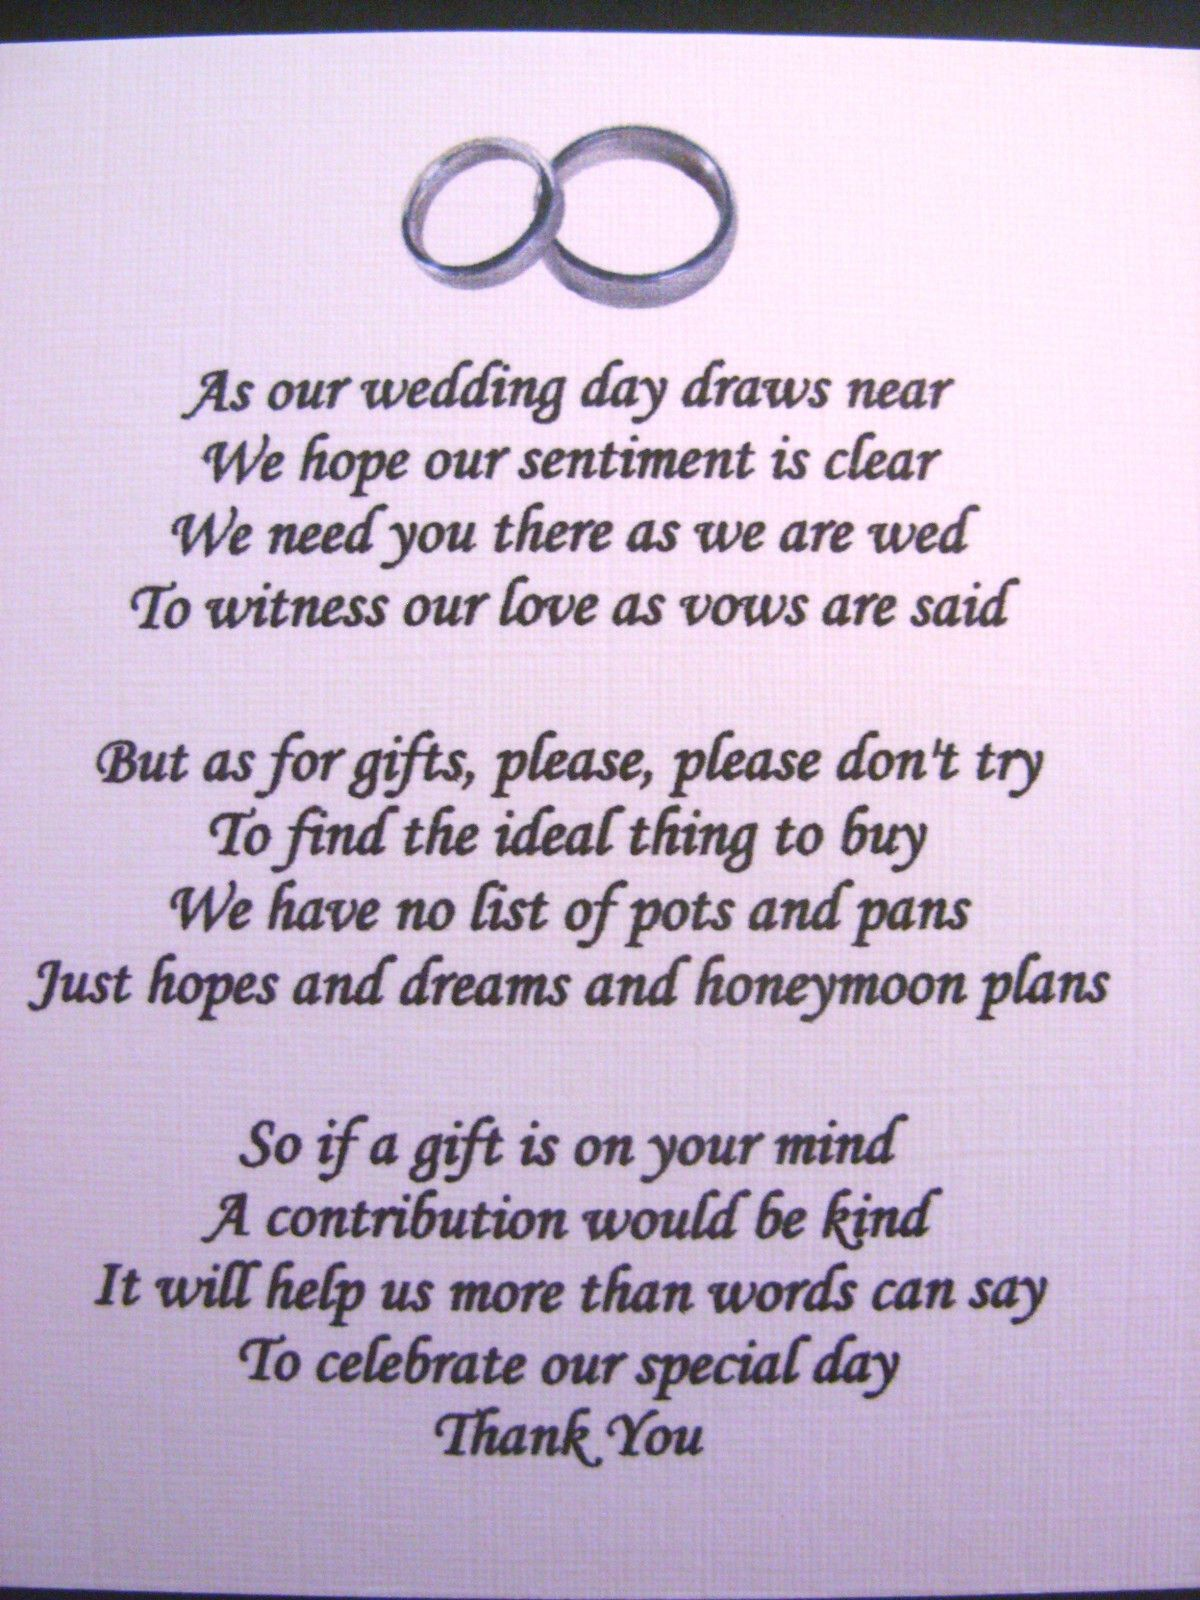 20 Wedding Poems Asking For Money Gifts Not Presents Ref No 4 Ebay